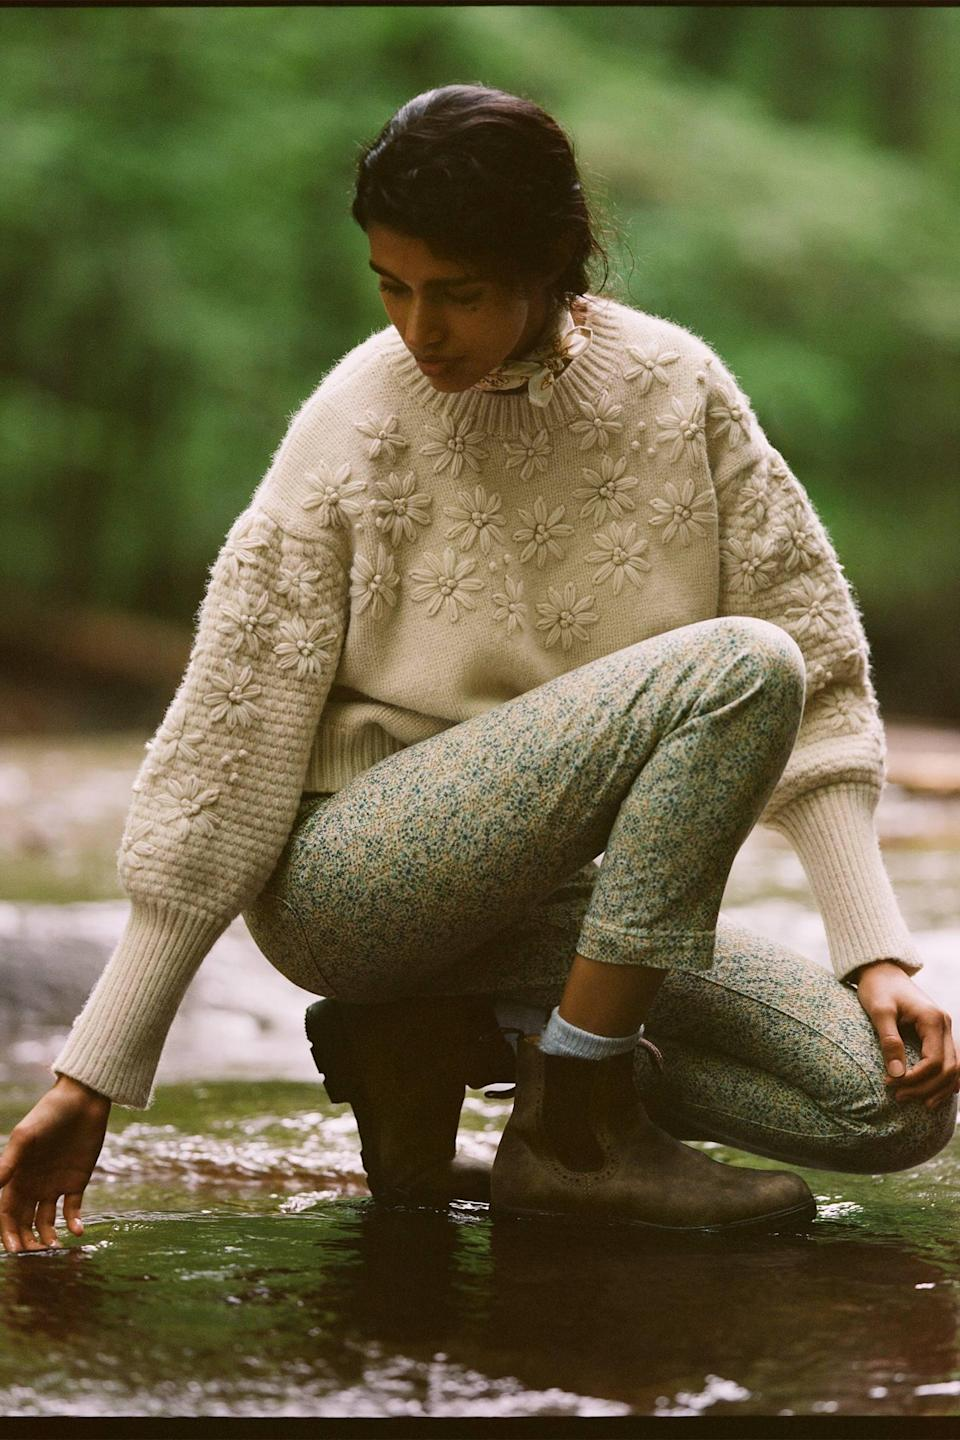 """<h2>Siobhan Textured Sweater</h2><br>If you're looking for the light, romantic feeling of lace embodied in a cozy knitted crewneck, look no further than this flora-and-fauna-dappled puff-sleeve confection.<br><br><br><strong>Raga</strong> Siobhan Textured Sweater, $, available at <a href=""""https://go.skimresources.com/?id=30283X879131&url=https%3A%2F%2Fwww.anthropologie.com%2Fshop%2Fsiobhan-textured-sweater%3Fcategory%3Dtops-sweaters%26color%3D011%26type%3DSTANDARD%26quantity%3D1"""" rel=""""nofollow noopener"""" target=""""_blank"""" data-ylk=""""slk:Anthropologie"""" class=""""link rapid-noclick-resp"""">Anthropologie</a>"""